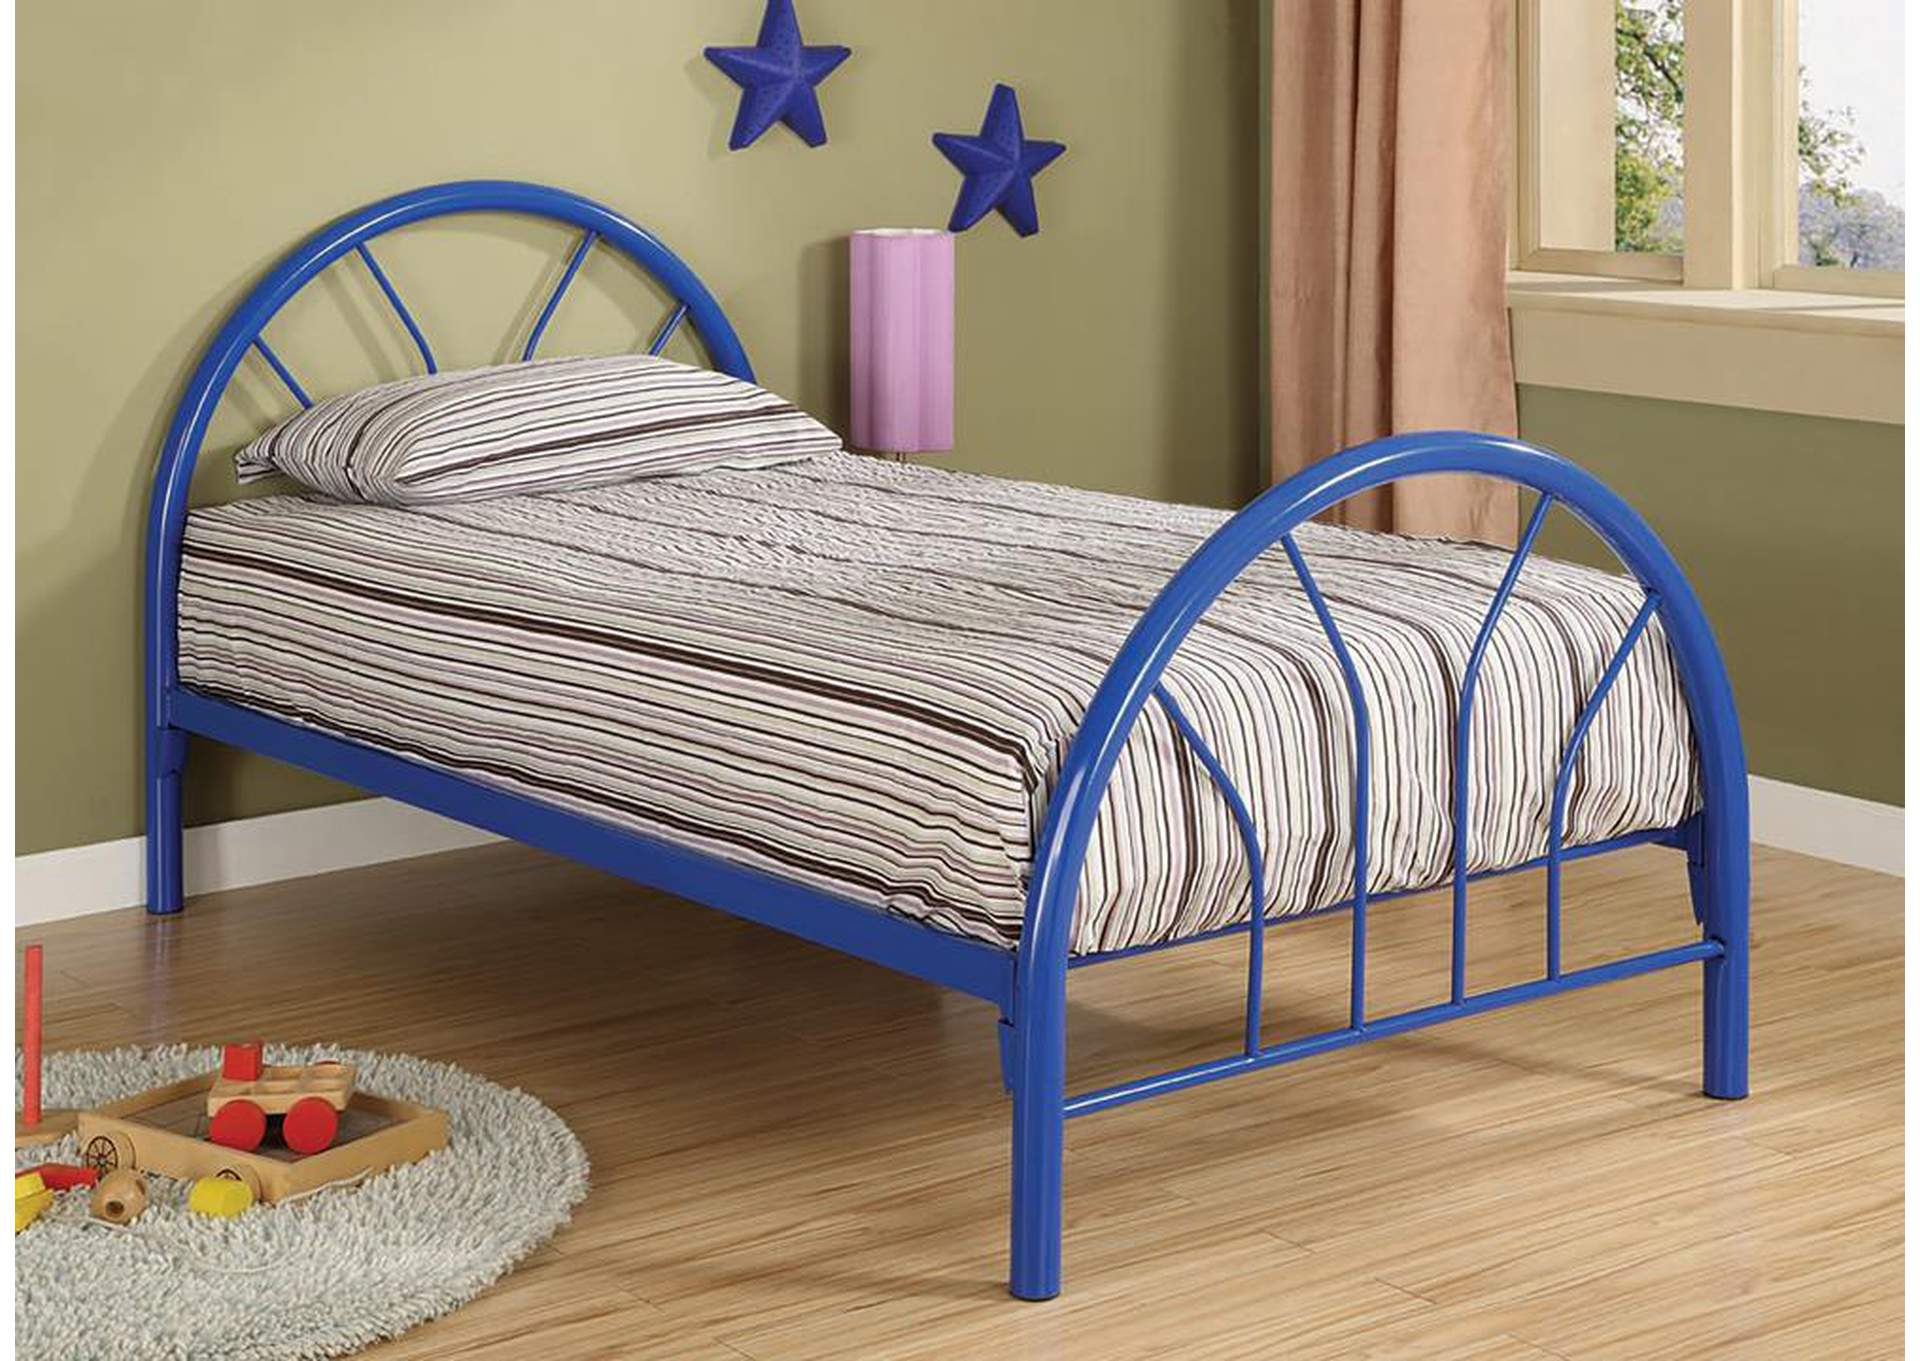 Blue Metal Twin Bed,ABF Coaster Furniture